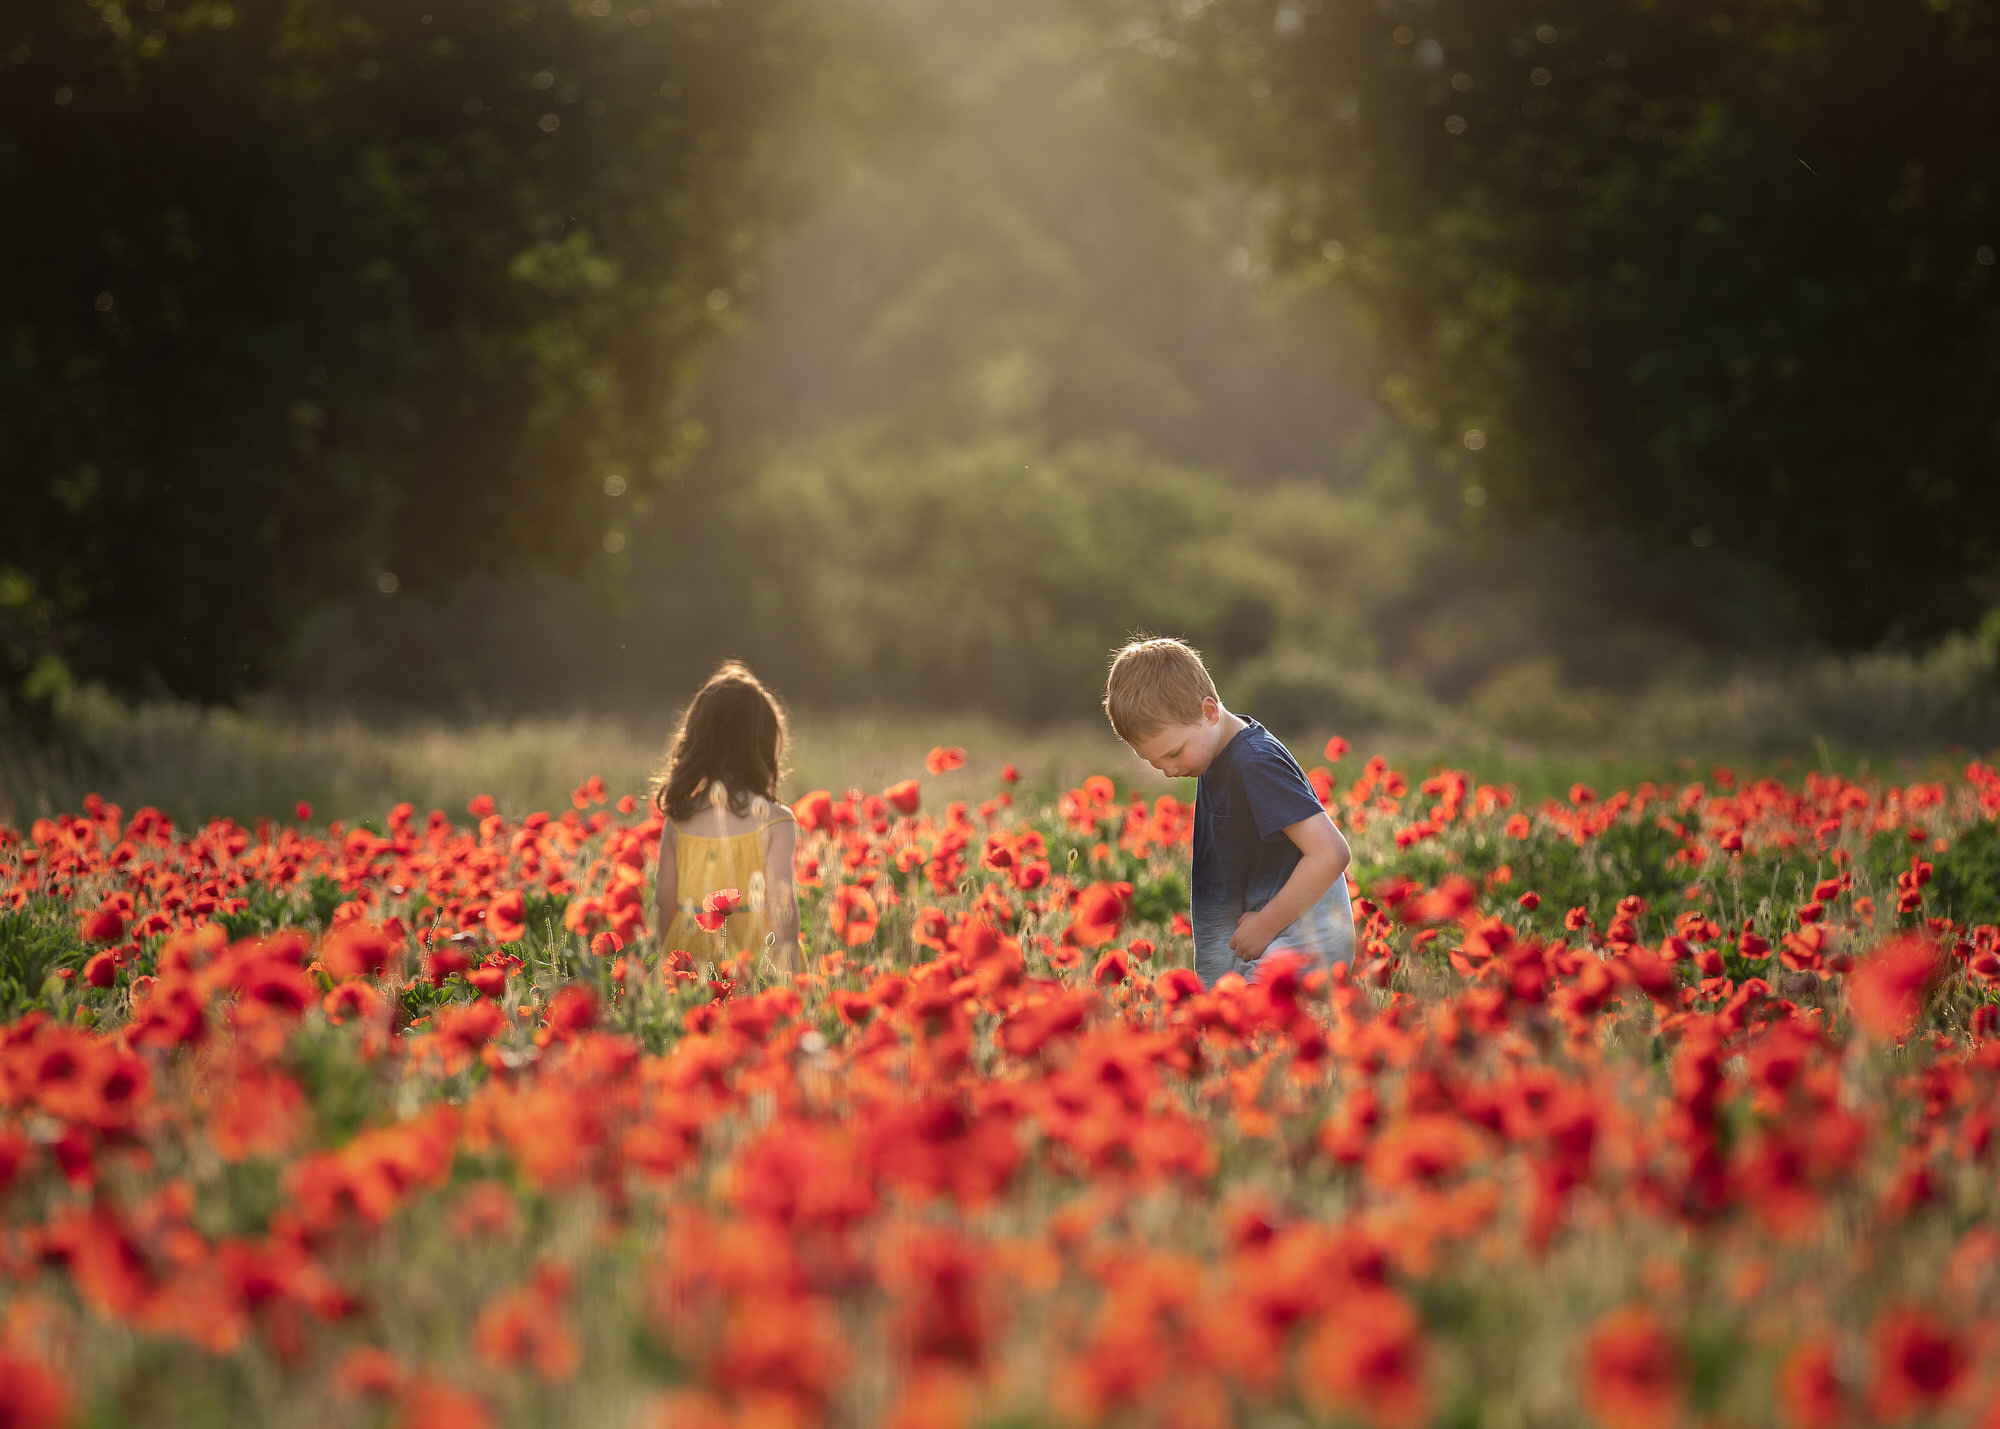 two children play in poppies